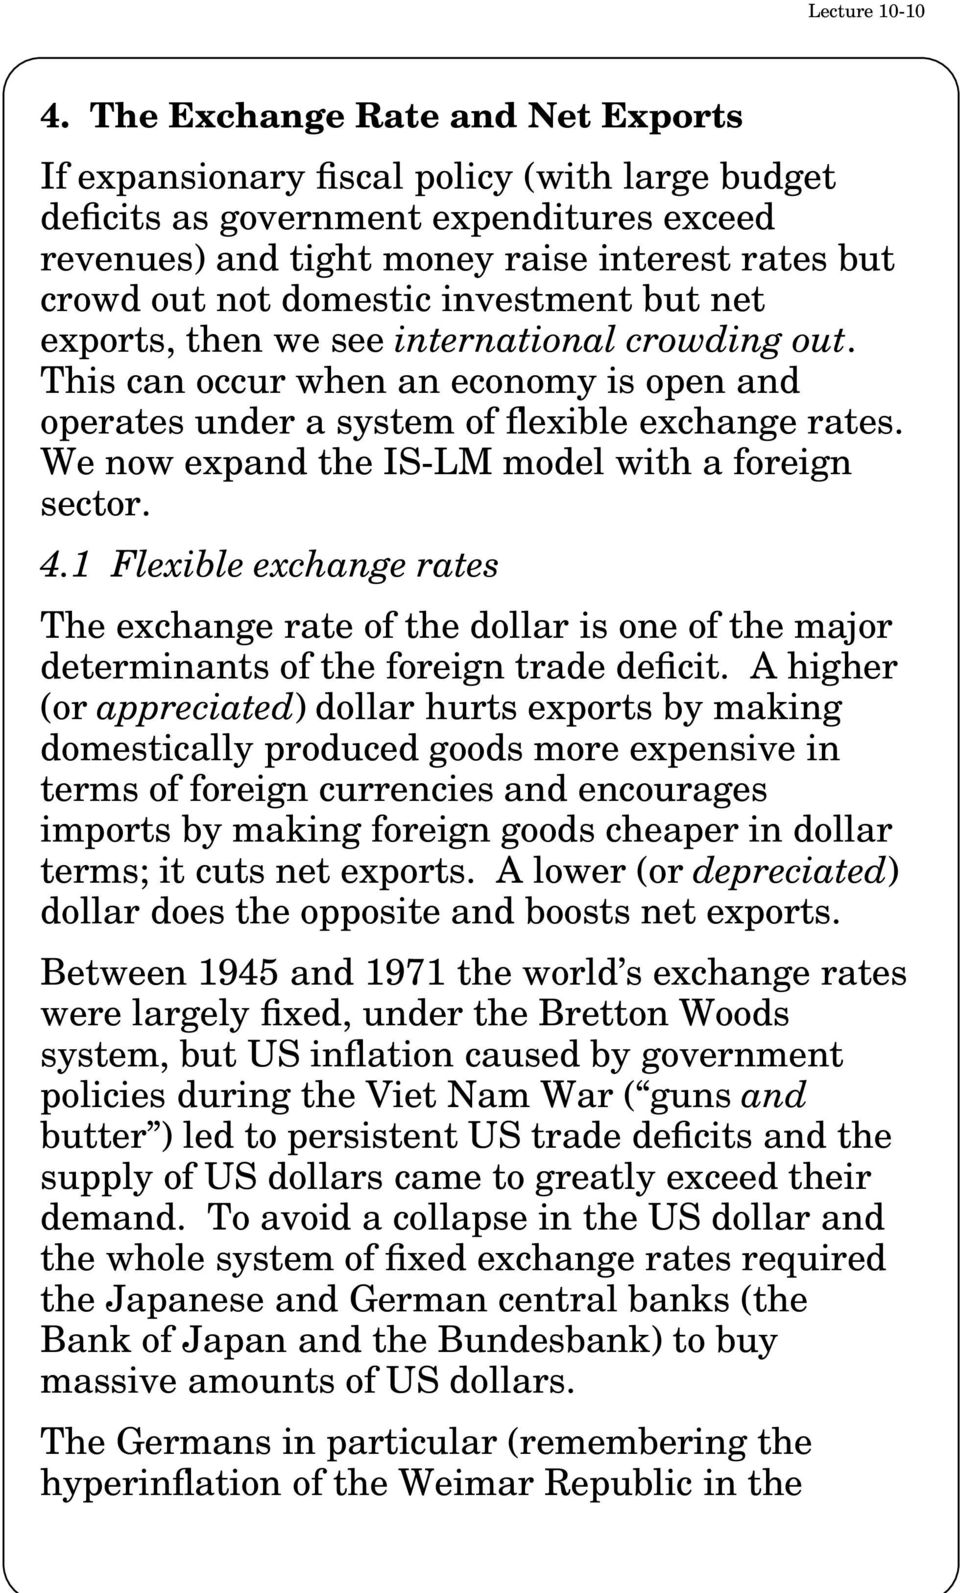 investment but net exports, then we see international crowding out. This can occur when an economy is open and operates under a system of flexible exchange rates.